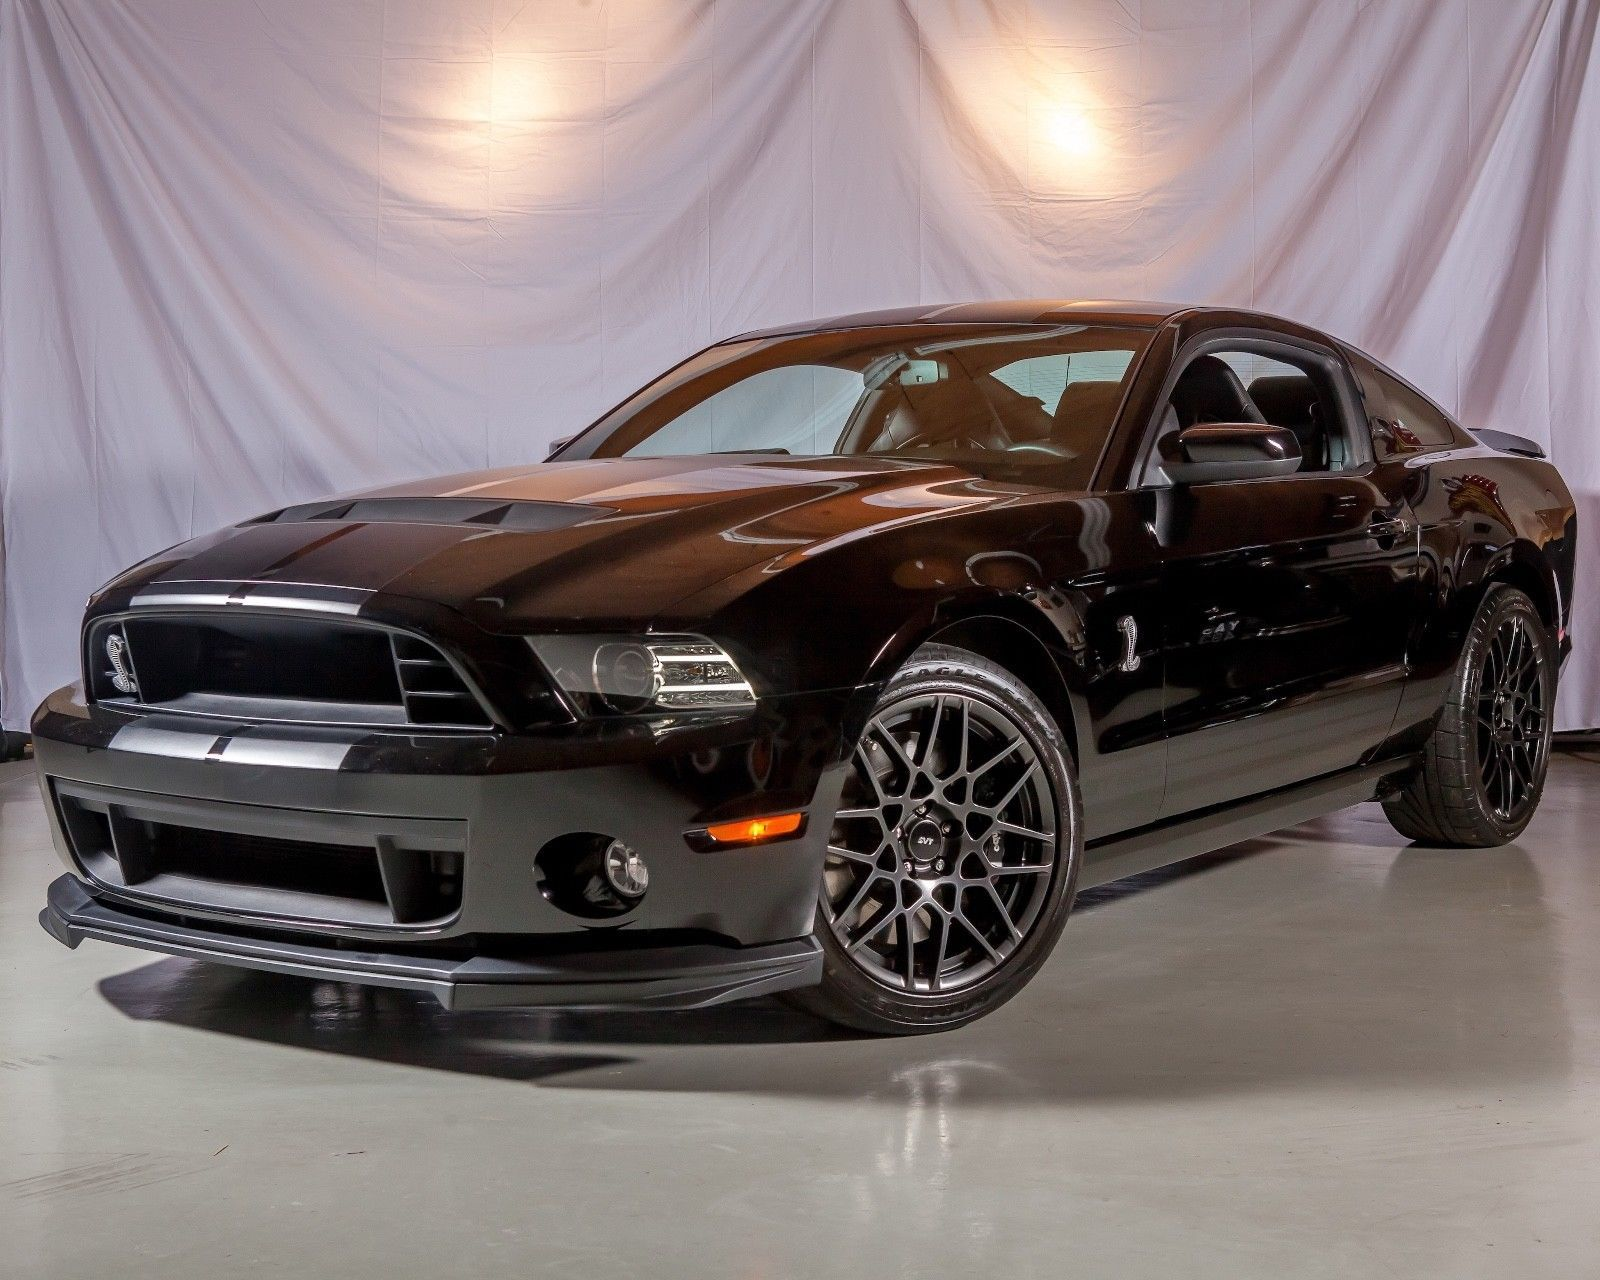 Cool Great 2013 Ford Mustang Shelby GT500 2013 Ford Mustang Shelby